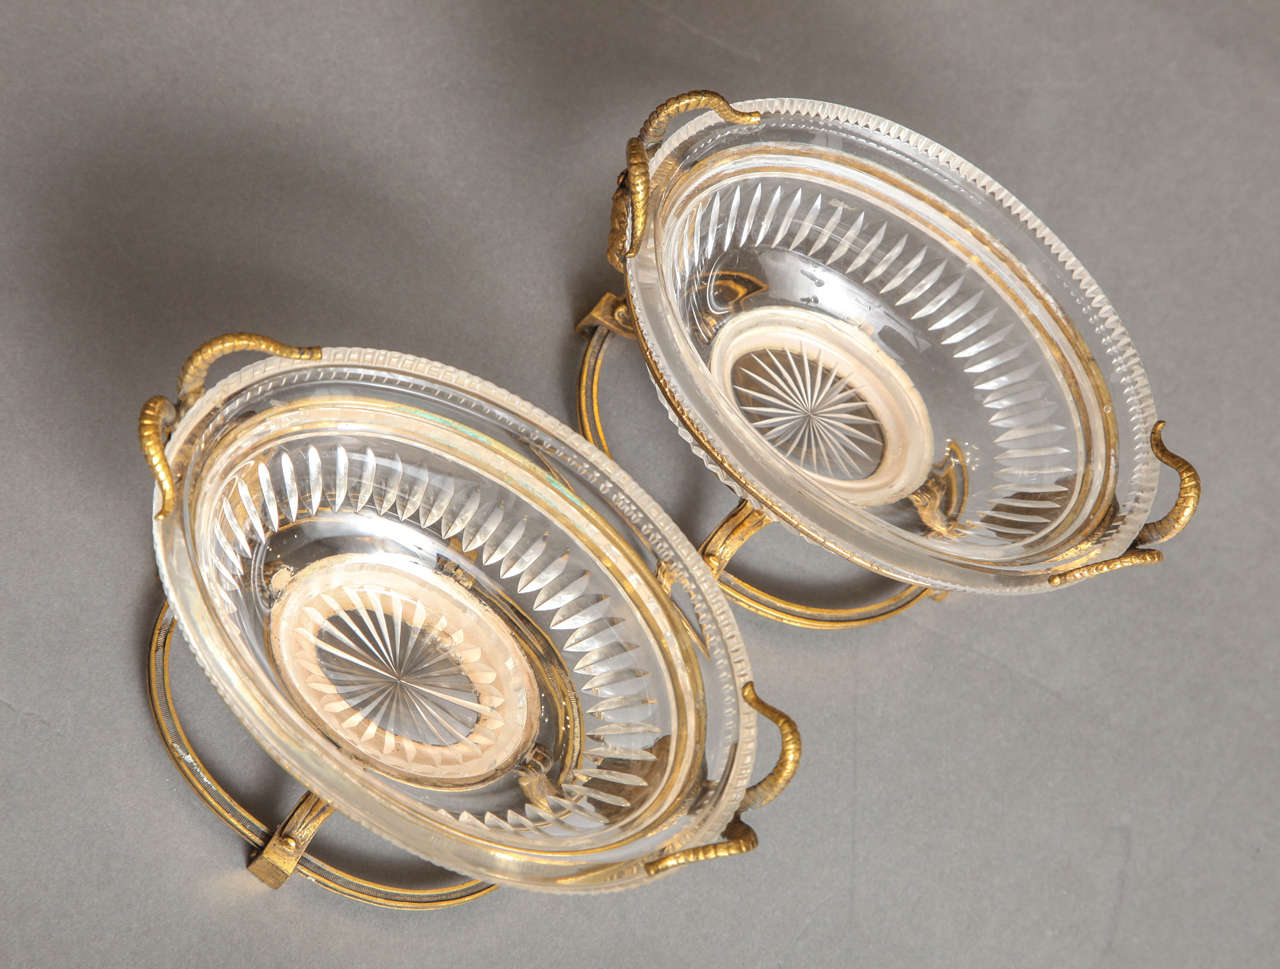 Pair of Russian Imperial Cut Crystal and Doré Bronze Centerpieces W/ Masks For Sale 3